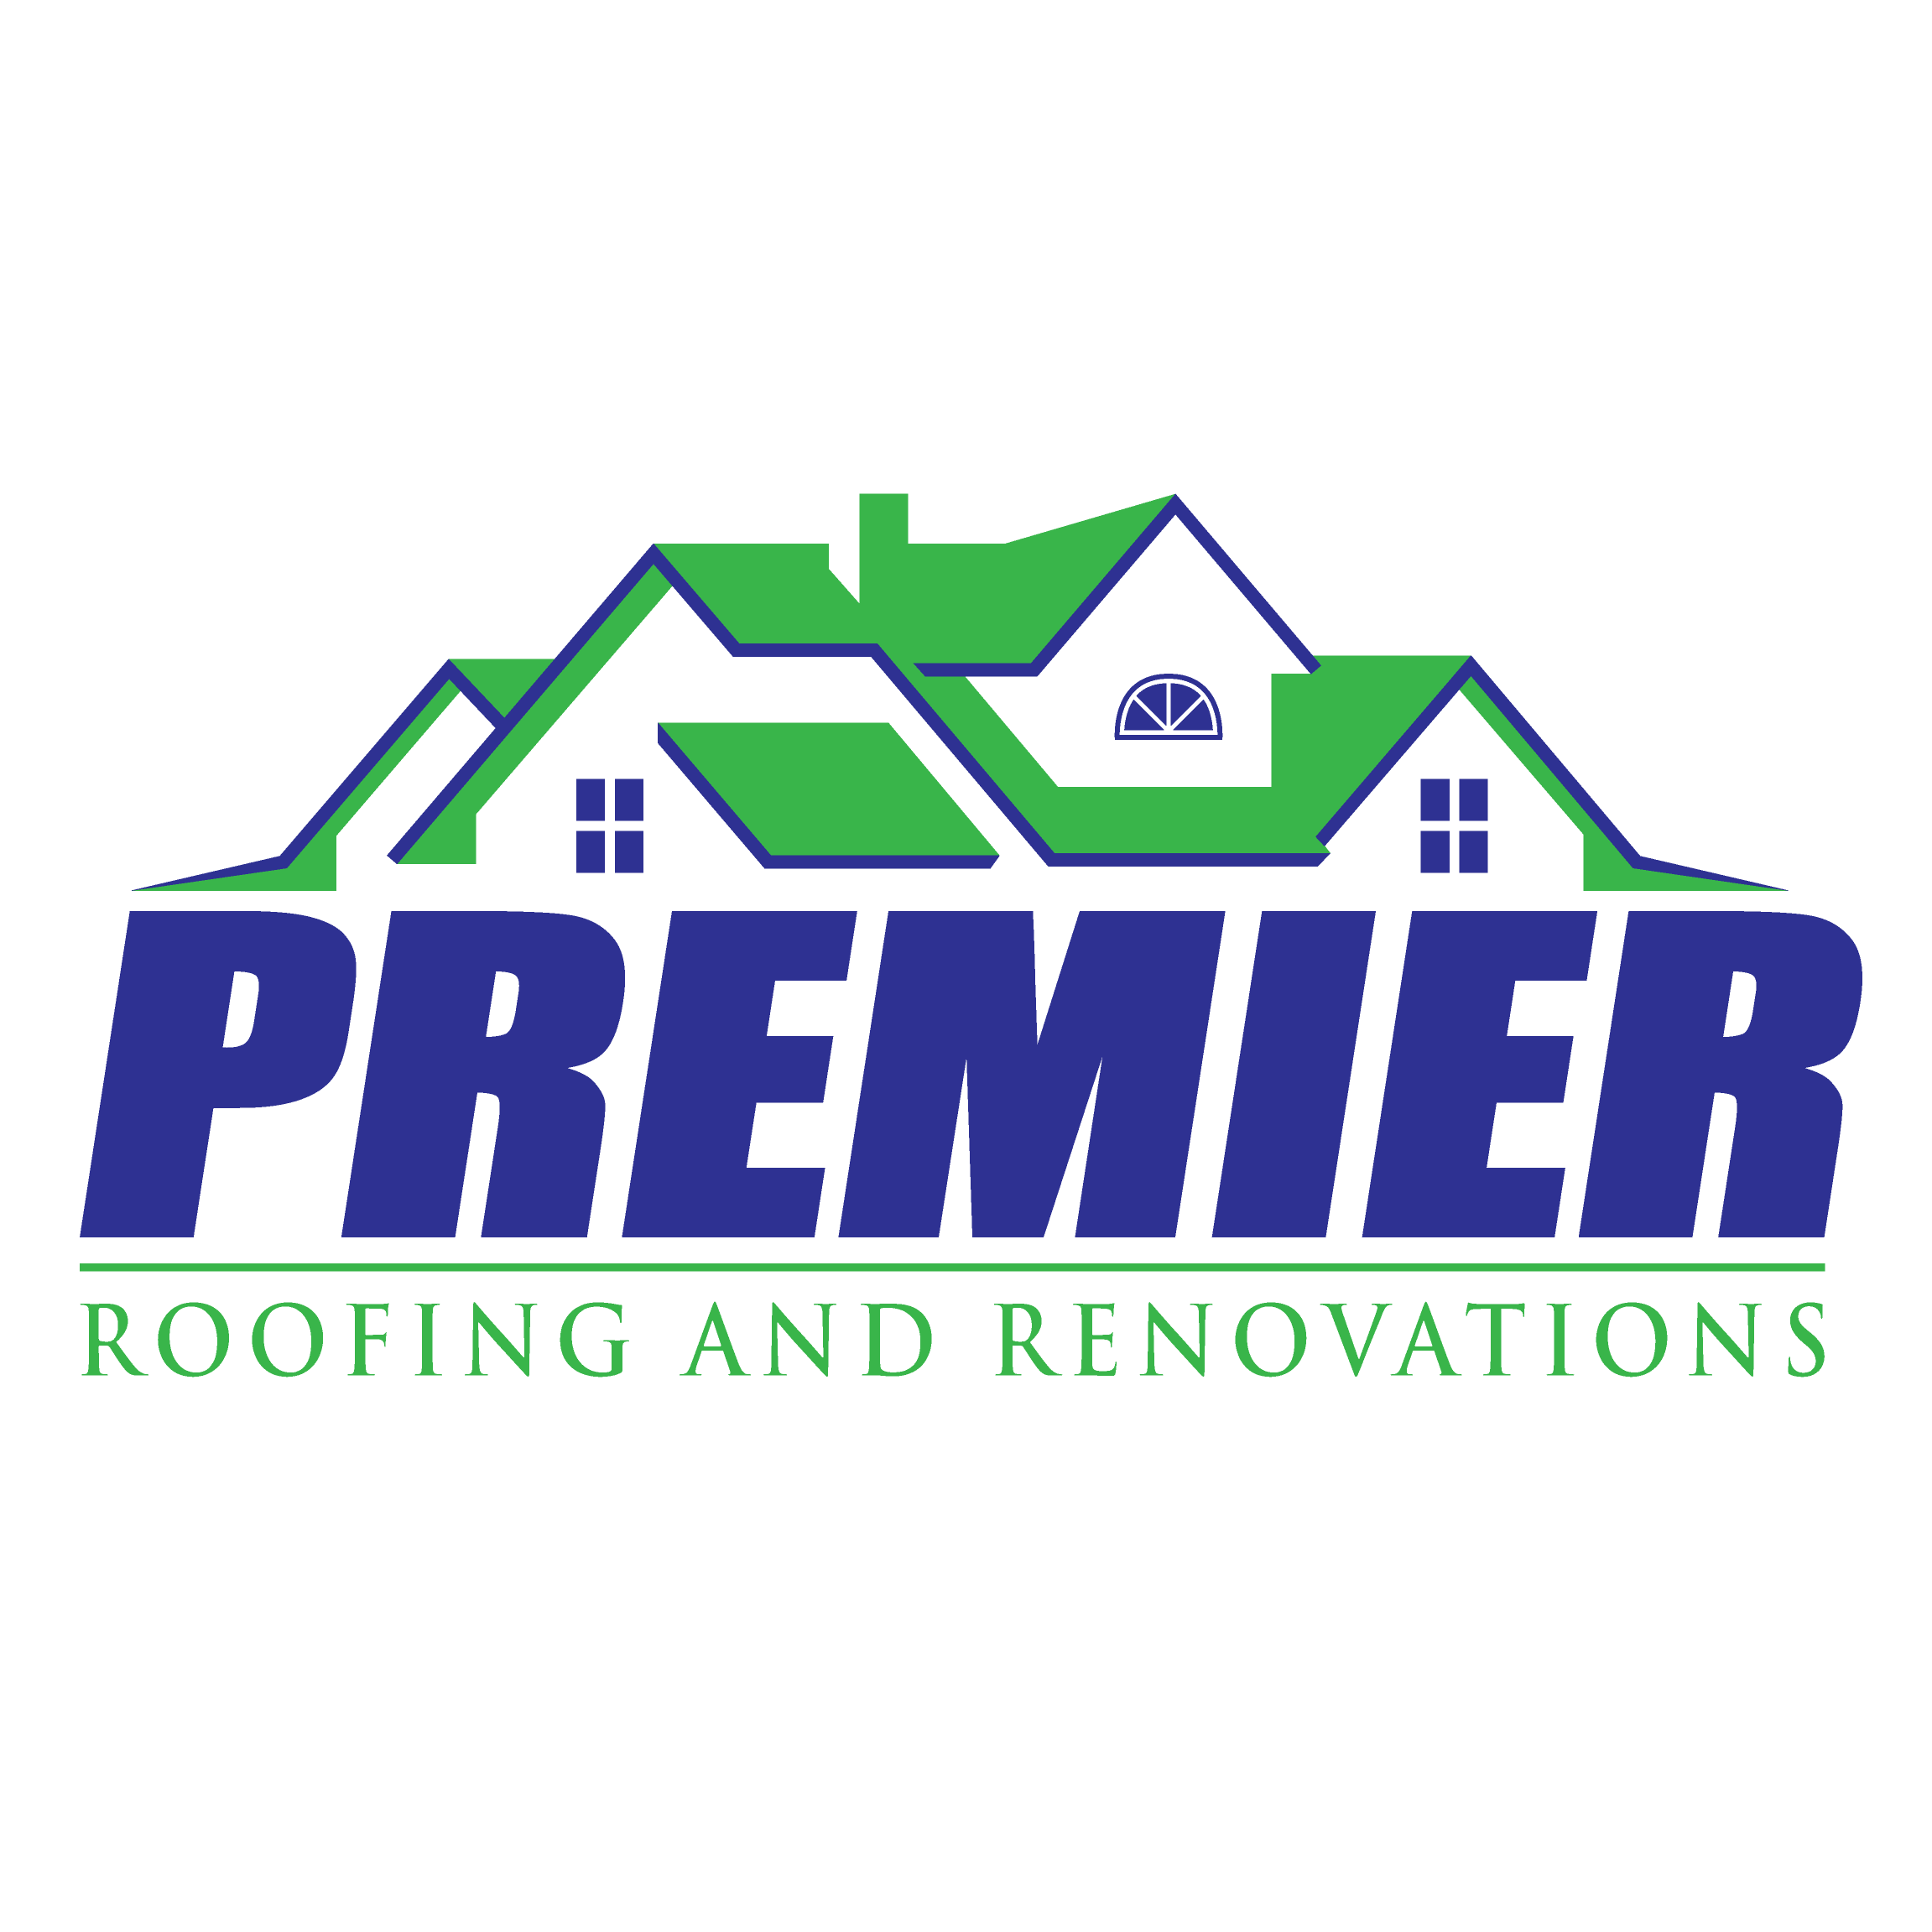 Premier Roofing and Renovations image 53